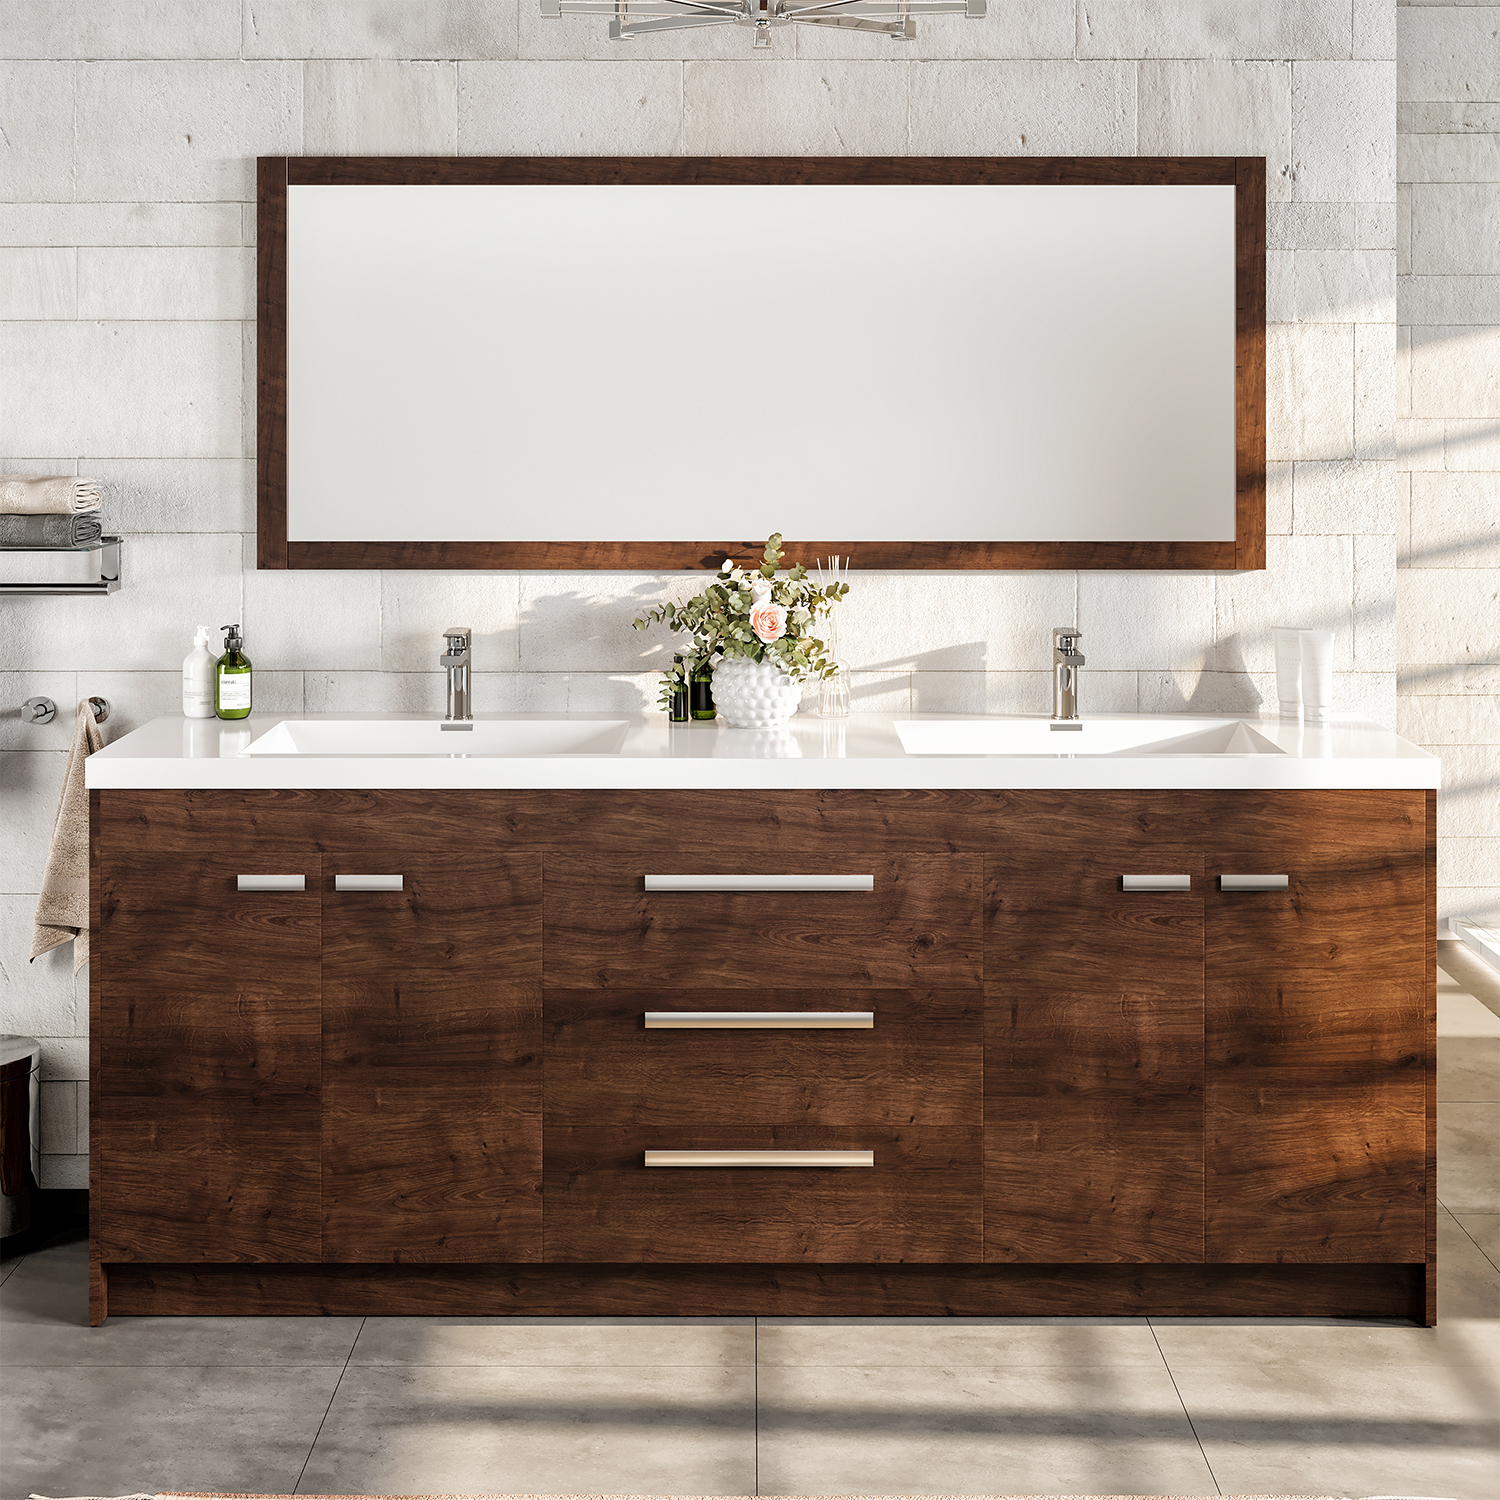 "EVVN1900 8 84RSWD A Main - Eviva Lugano 84"" Rosewood Modern Bathroom Vanity with White Integrated Acrylic Double Sink"